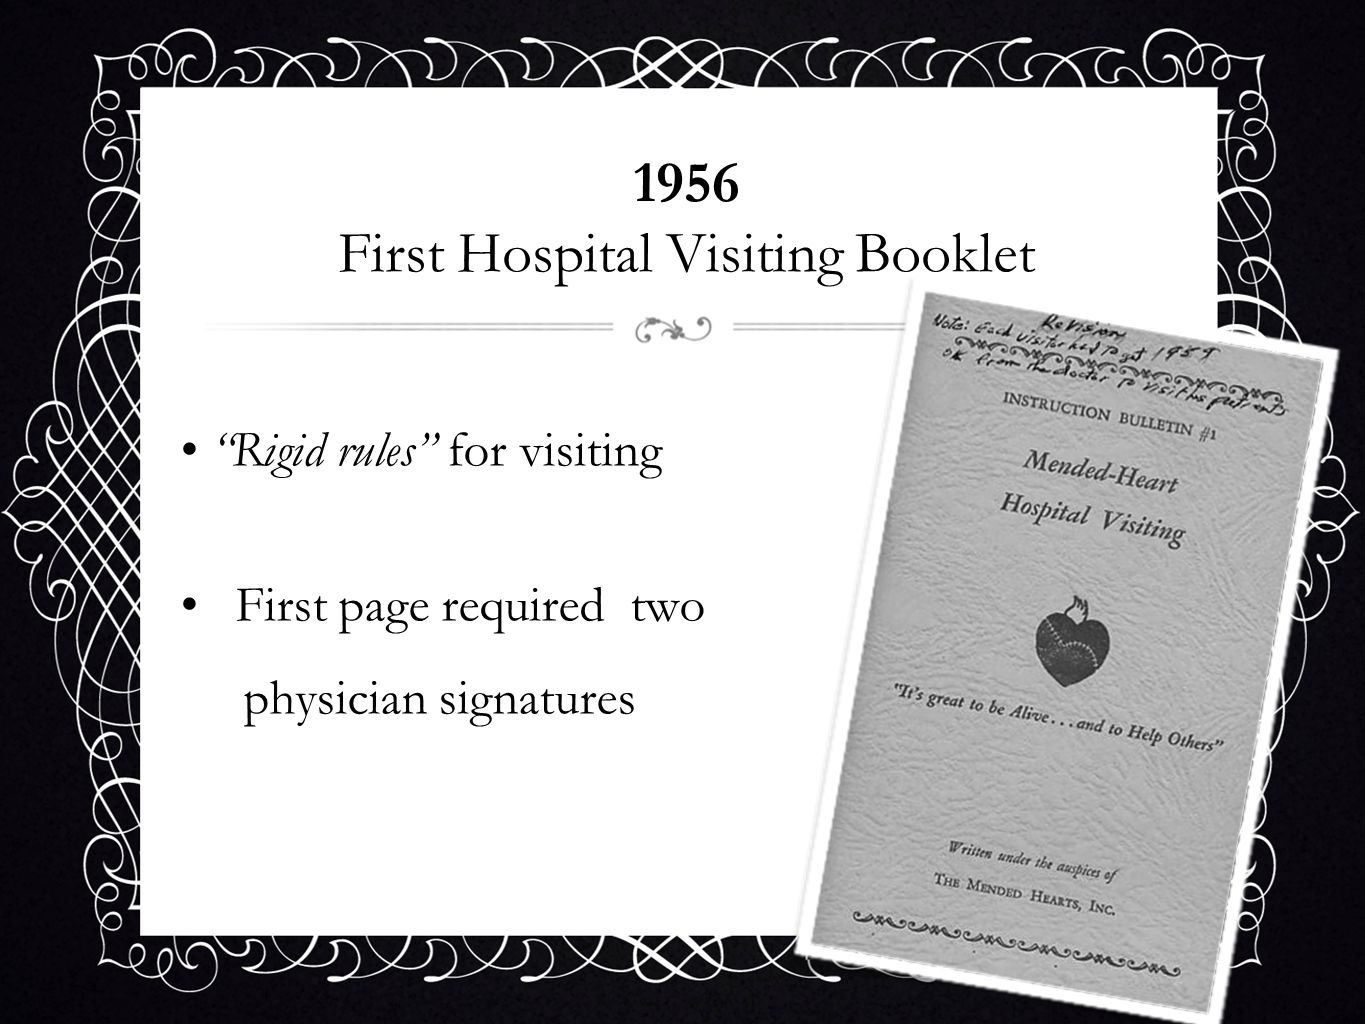 1956 First Hospital Visiting Booklet